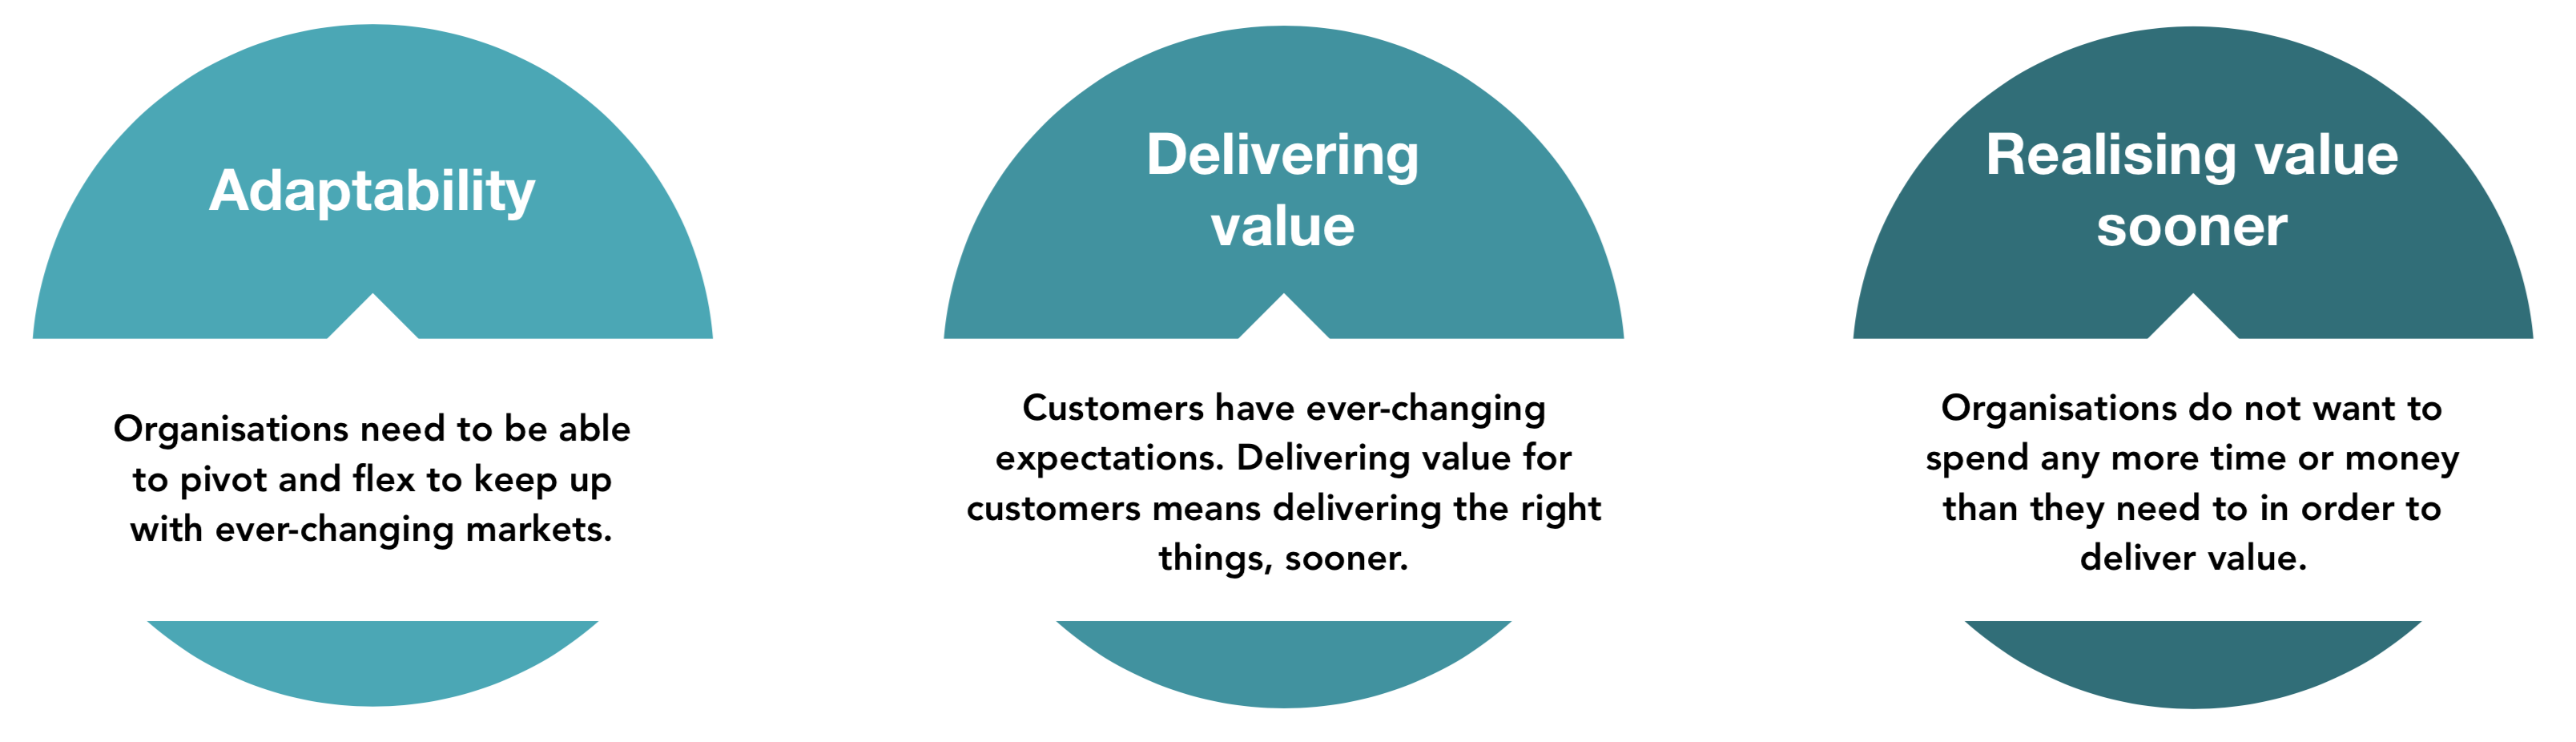 Agile | Adaptability | Delivering Value | Realising Value Sooner